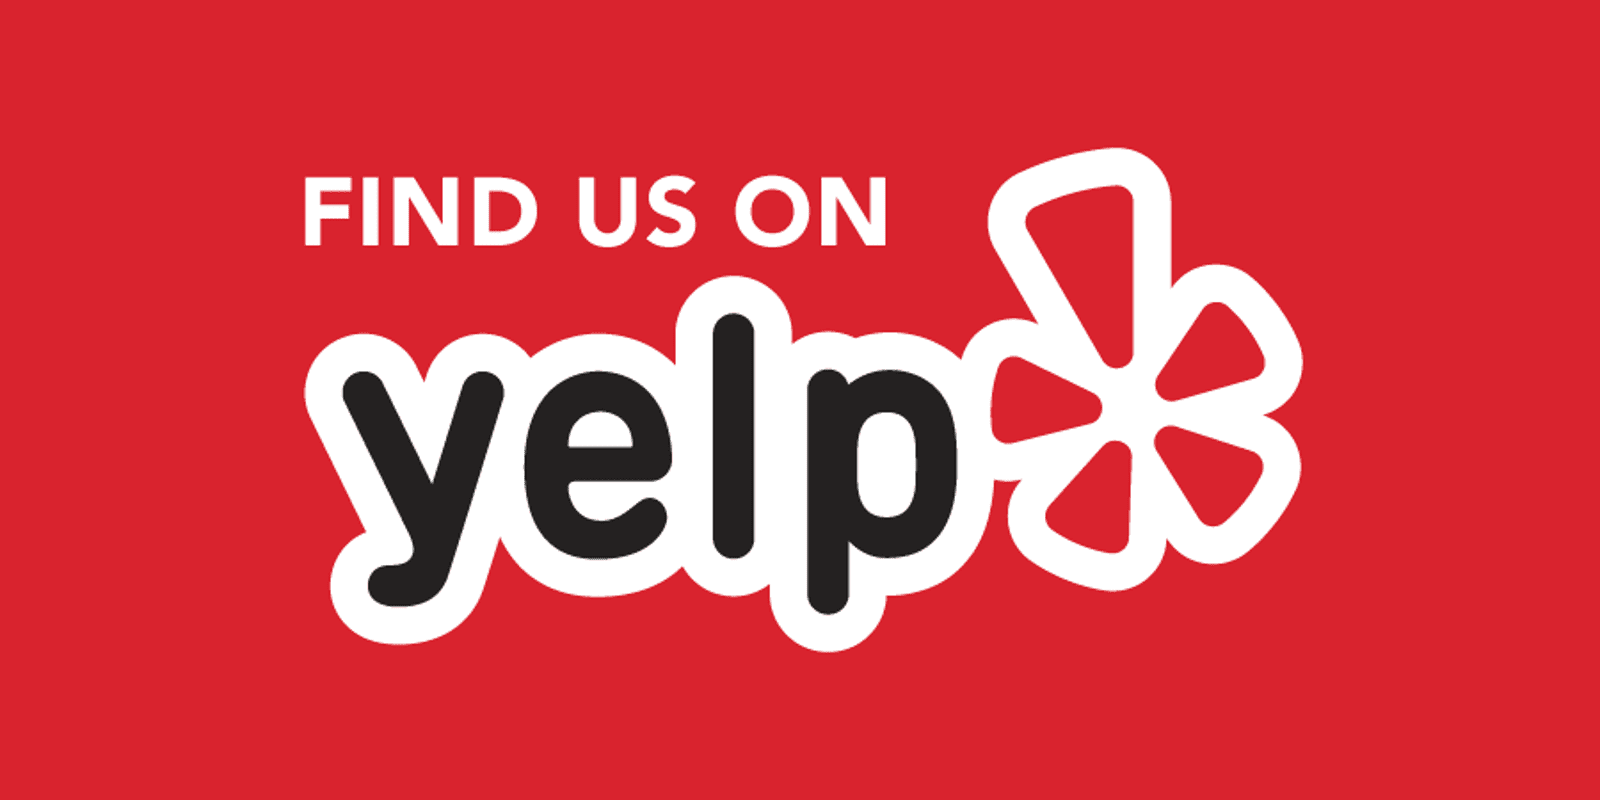 Shop Black-owned, upload receipt in support, Yelp says